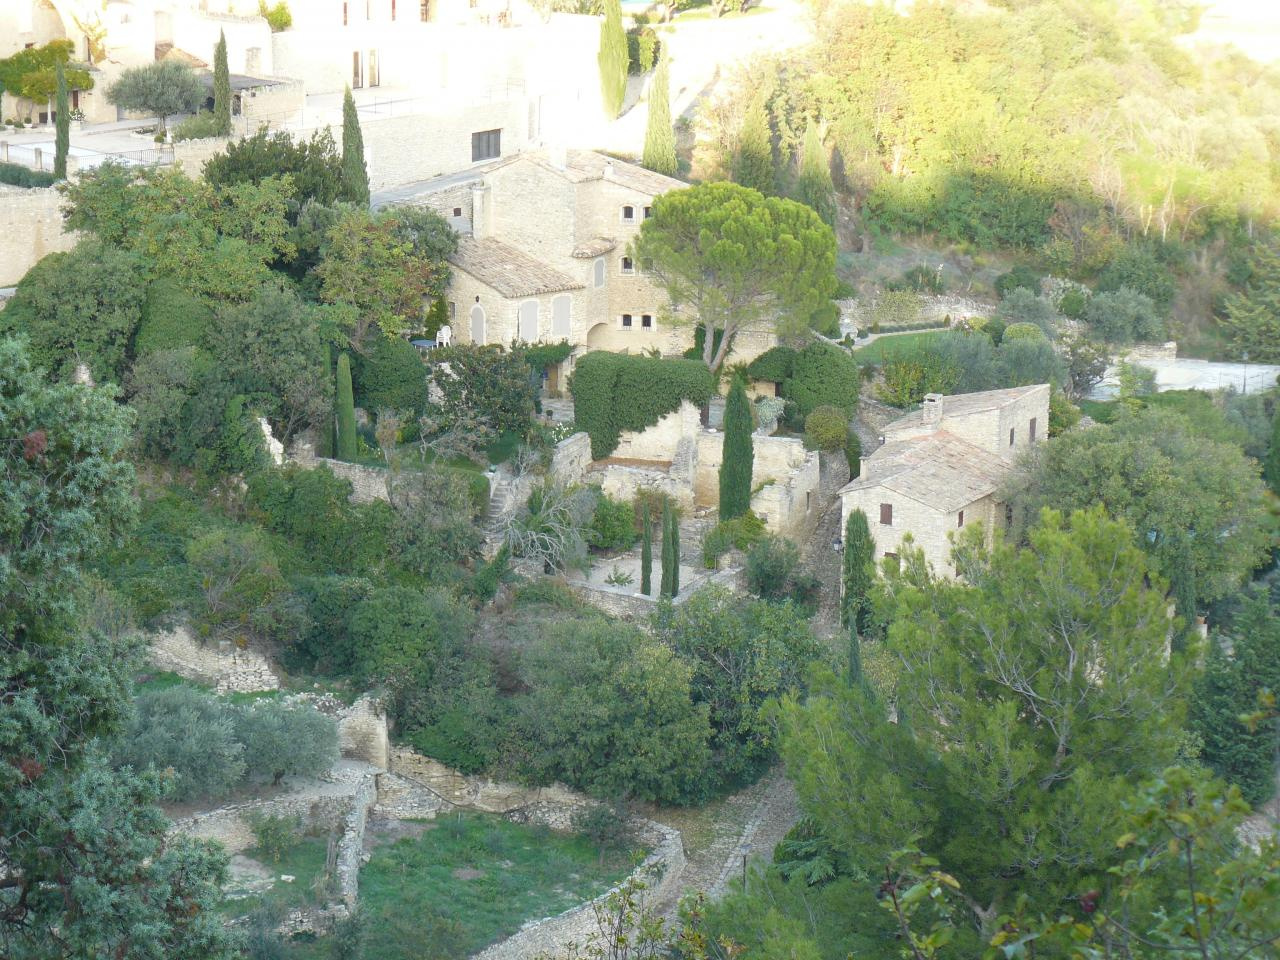 Overlook on the houses, Gordes